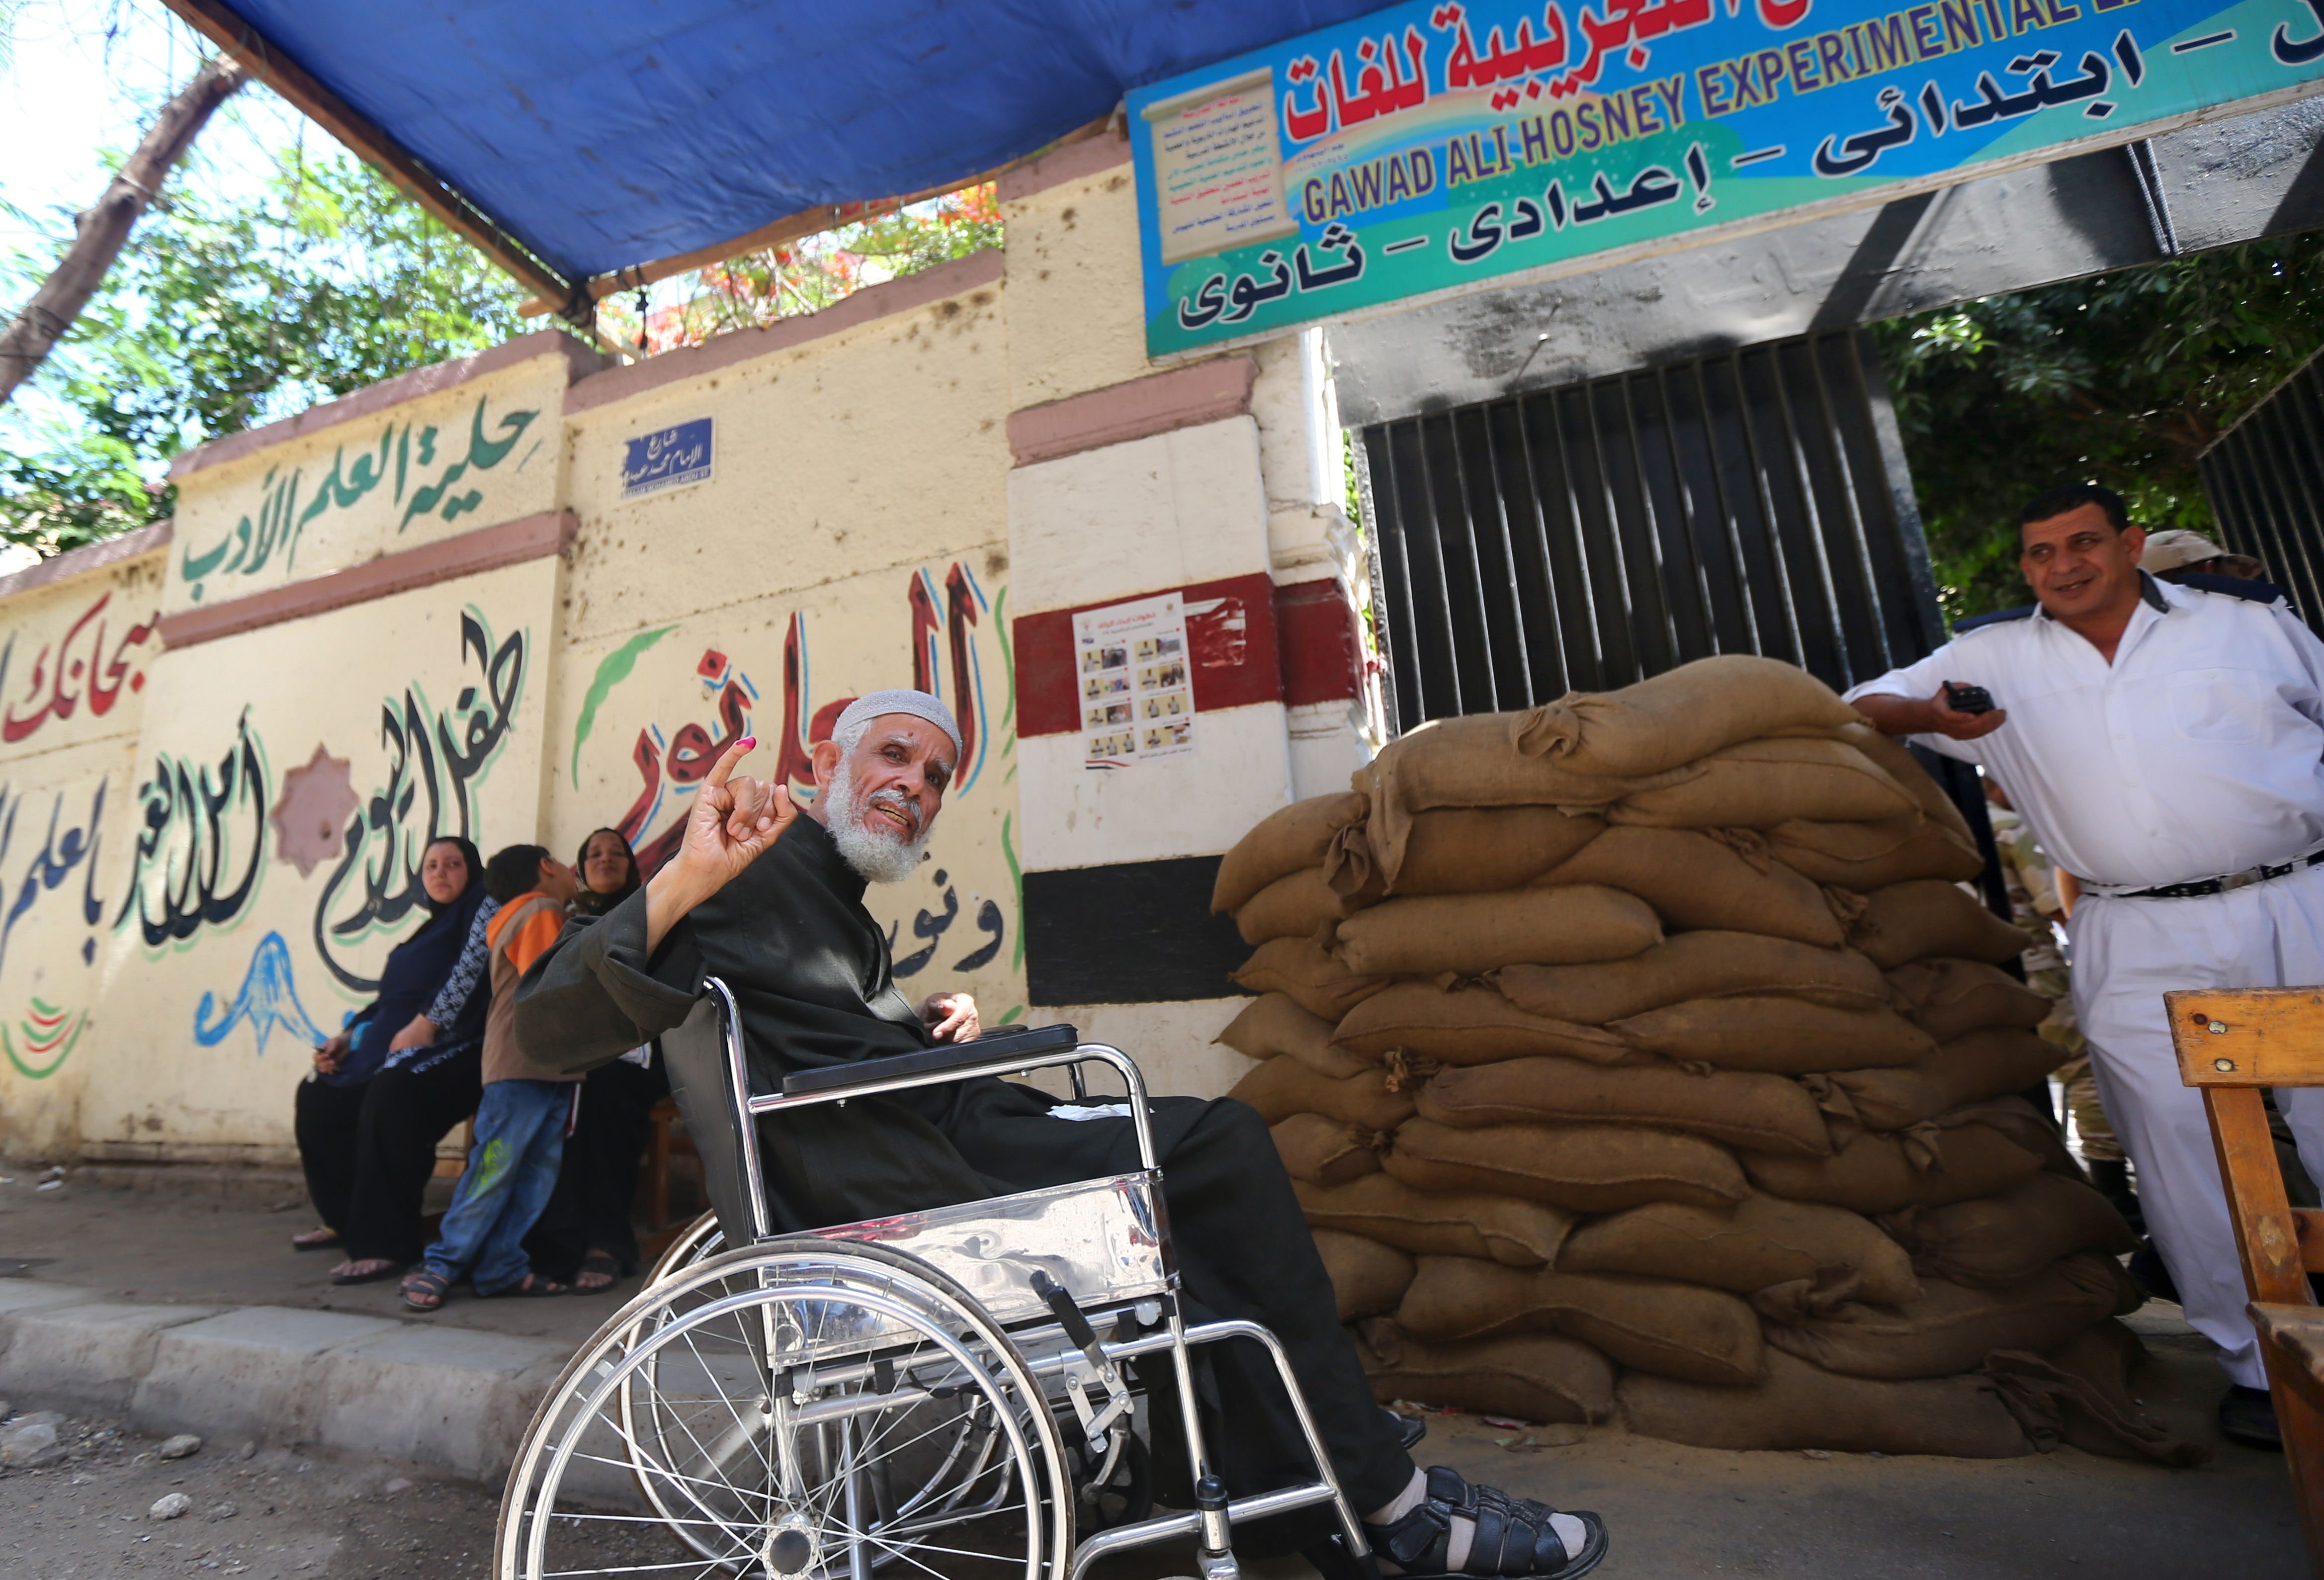 An Egyptian man using a wheelchair shows his ink-stained finger after casting his vote at a polling station in Cairo on the second day of Egypt's presidential election on May 27, 2014. The frontrunner is Abdel Fattah al-Sisi, the now retired army chief who ousted elected president Mohamed Morsi last July, in what many here call a bloody military coup.  (AFP PHOTO/MARWAN NAAMANI)